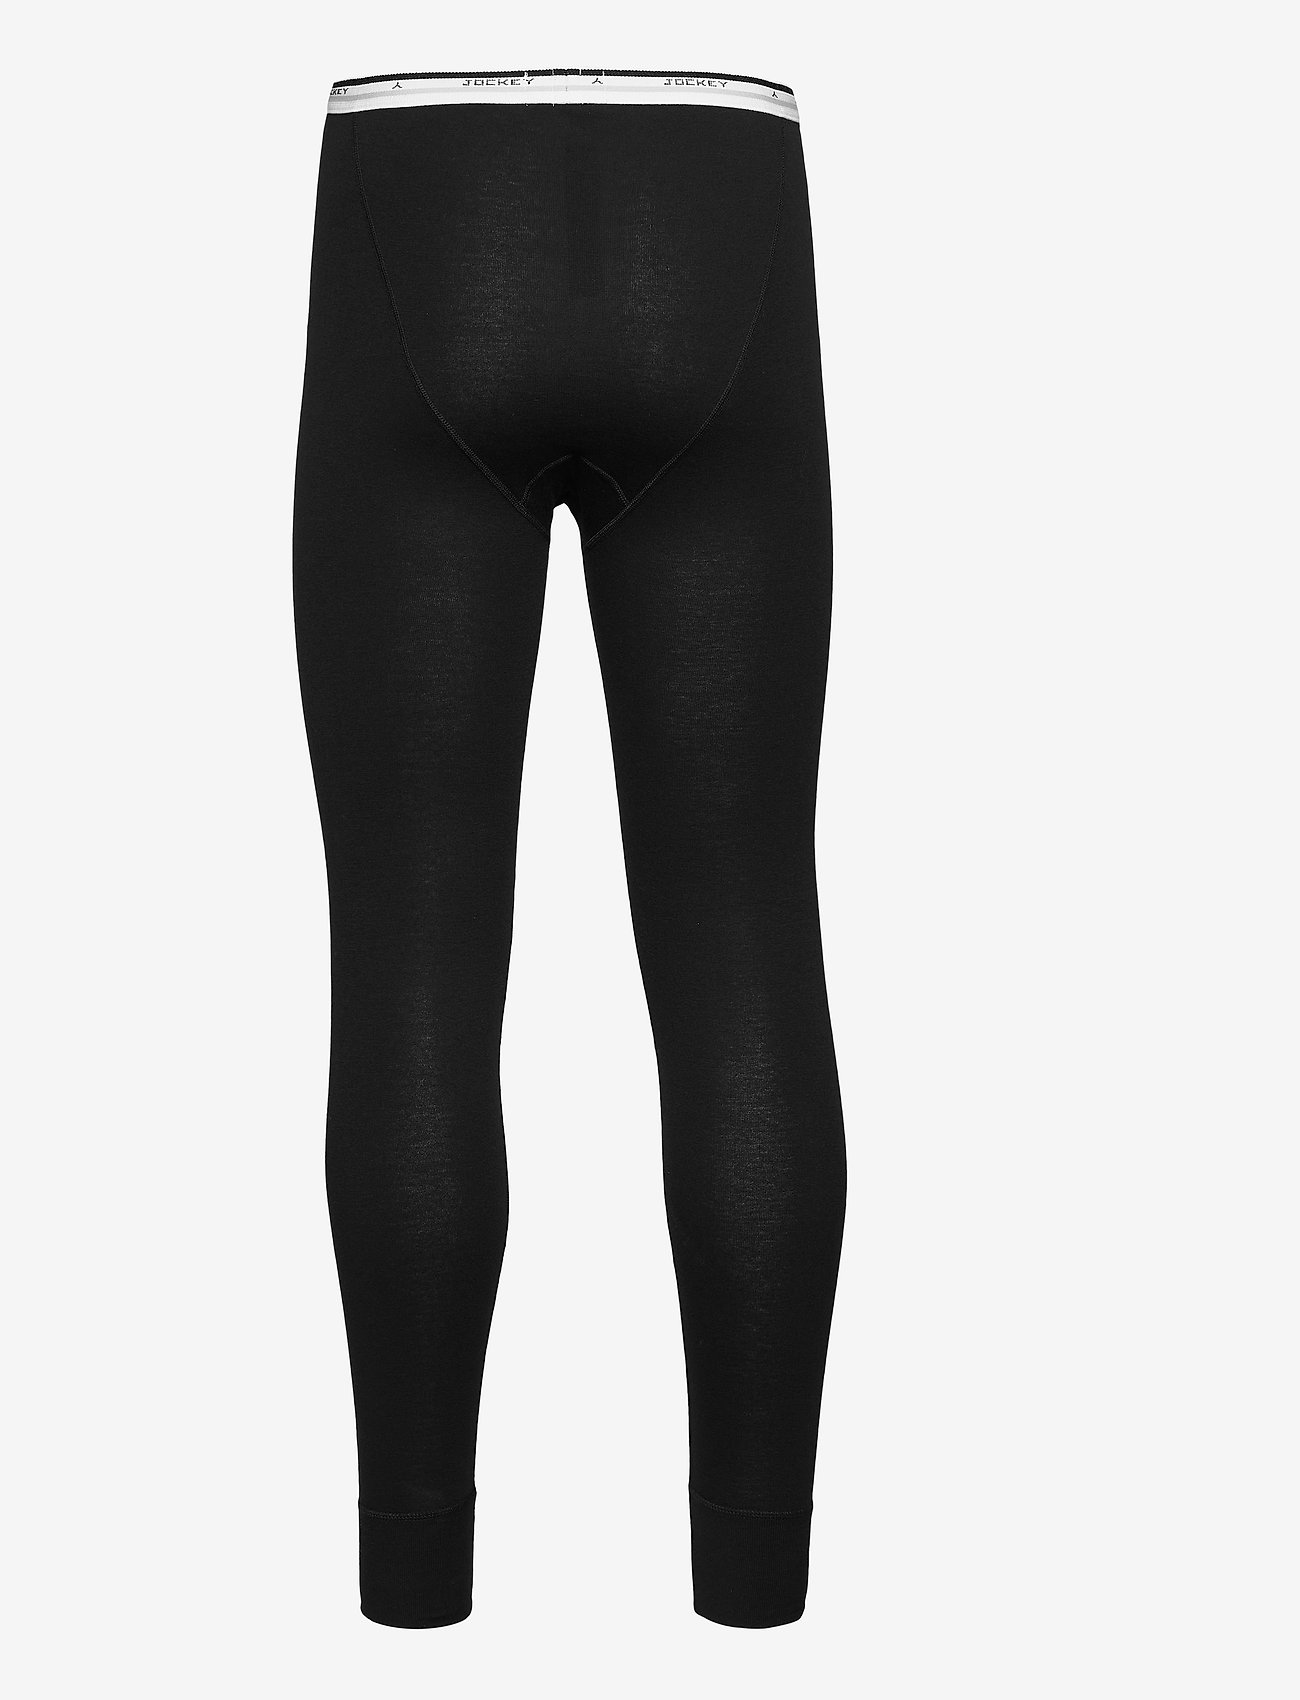 Jockey - Long spurt - base layer bottoms - black - 1